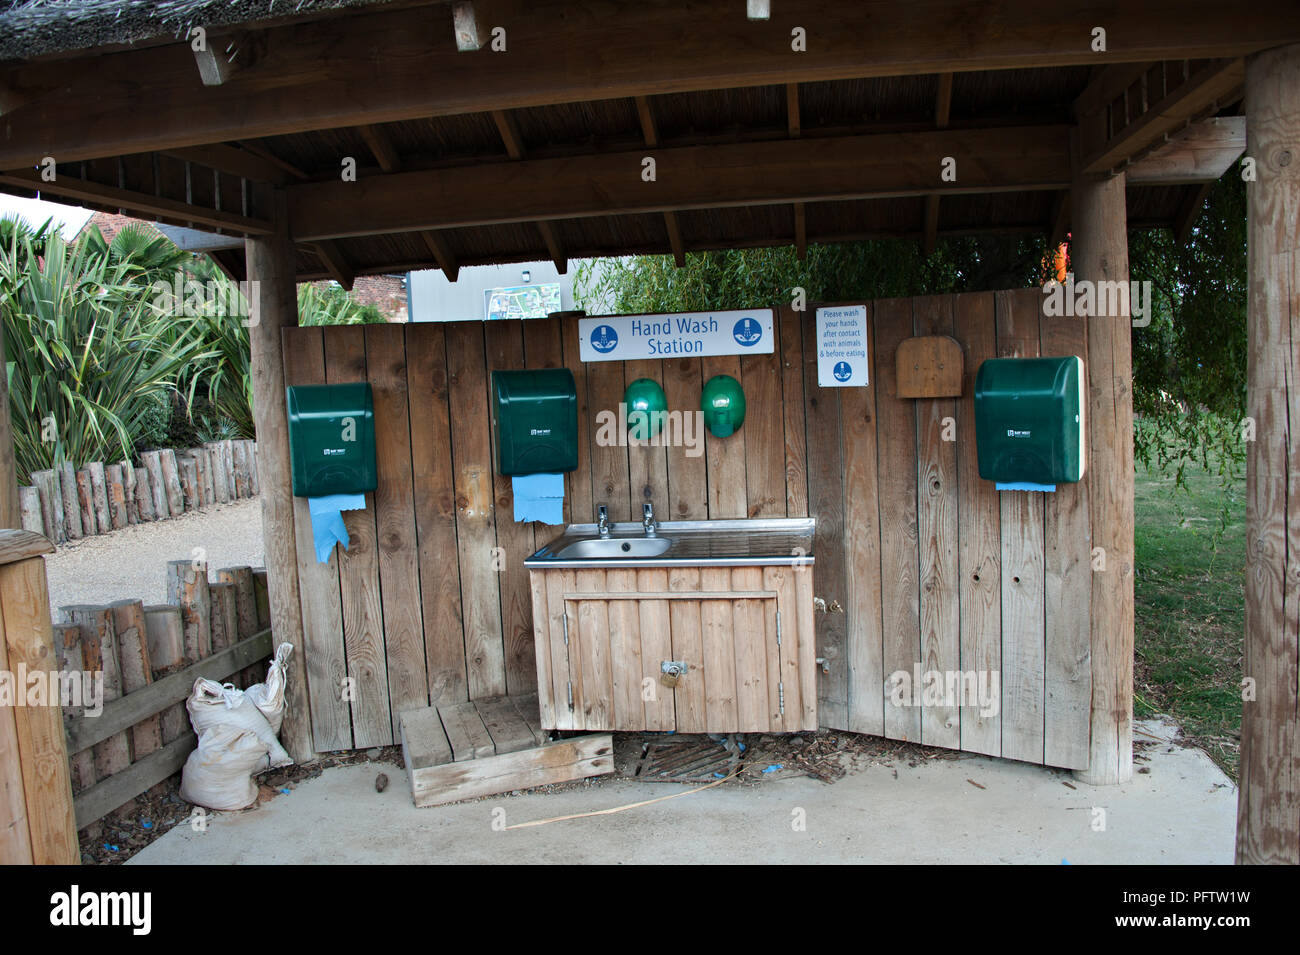 Washing and paper towels are provided at the Yorkshire Wildlife Park, Doncaster, South Yorkshire UK - Stock Image